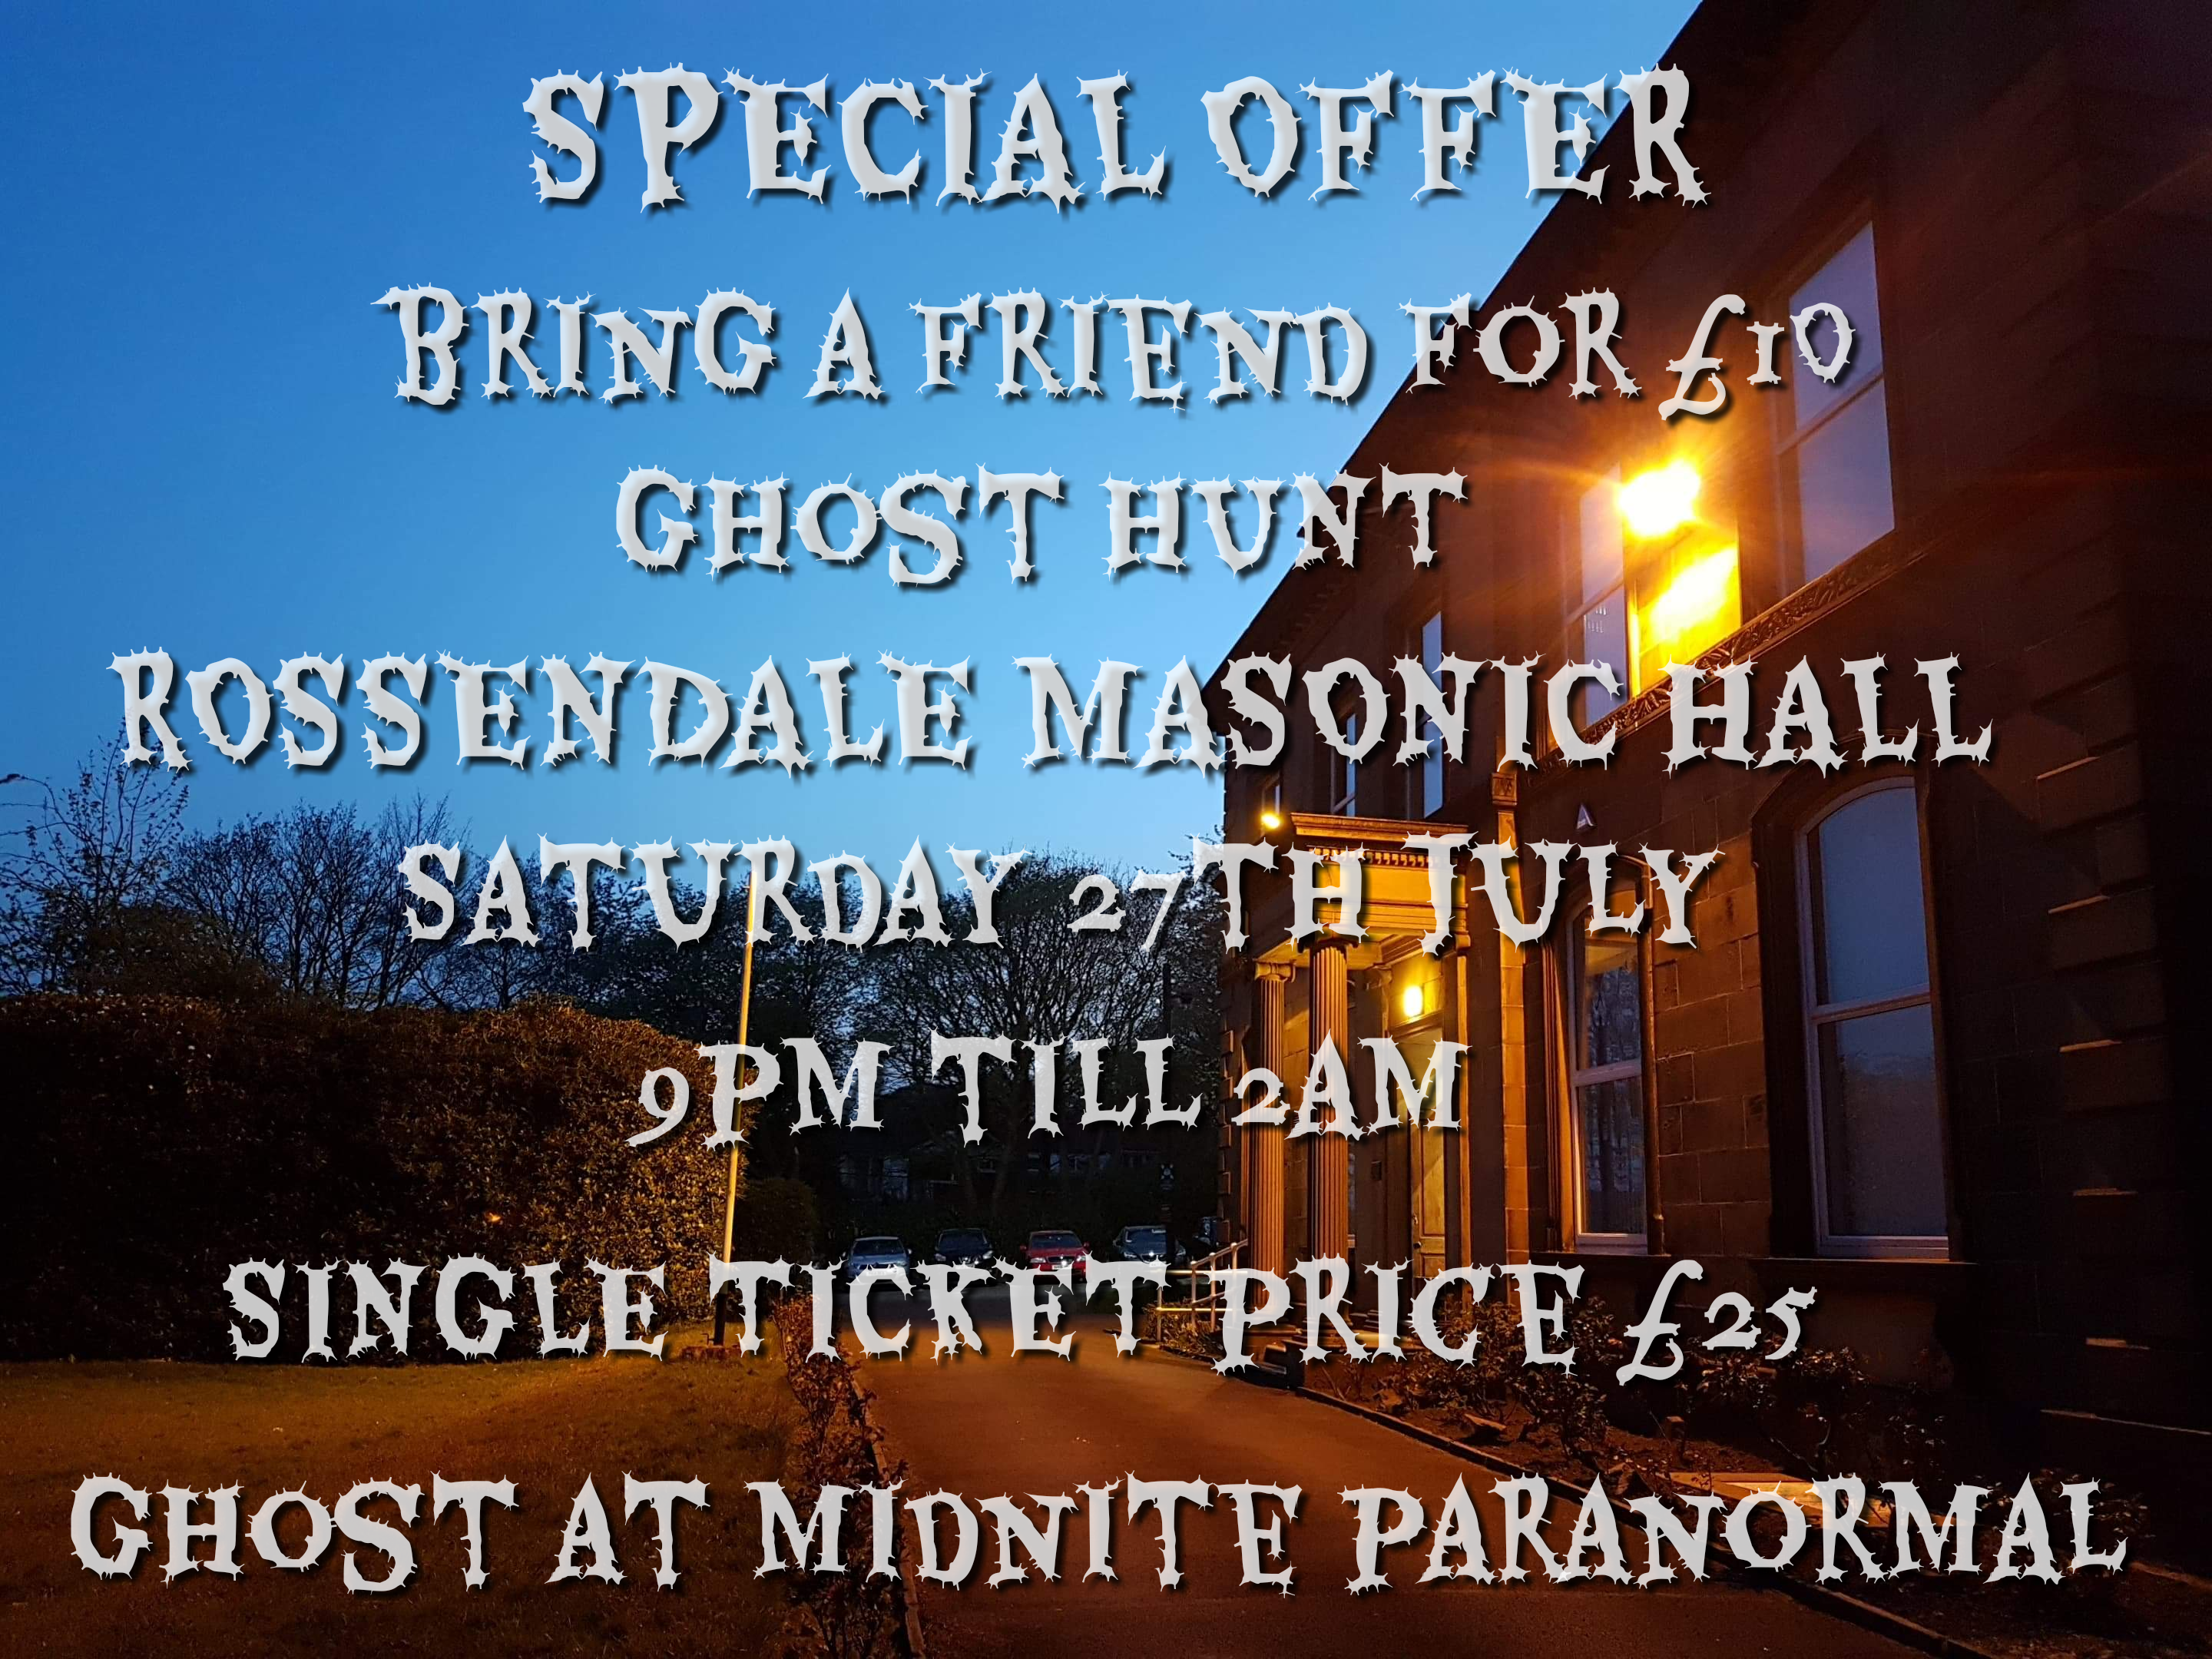 MASONIC HALL ROSSENDALE BRING A FRIEND FOR £10 SATURDAY 27TH JULY